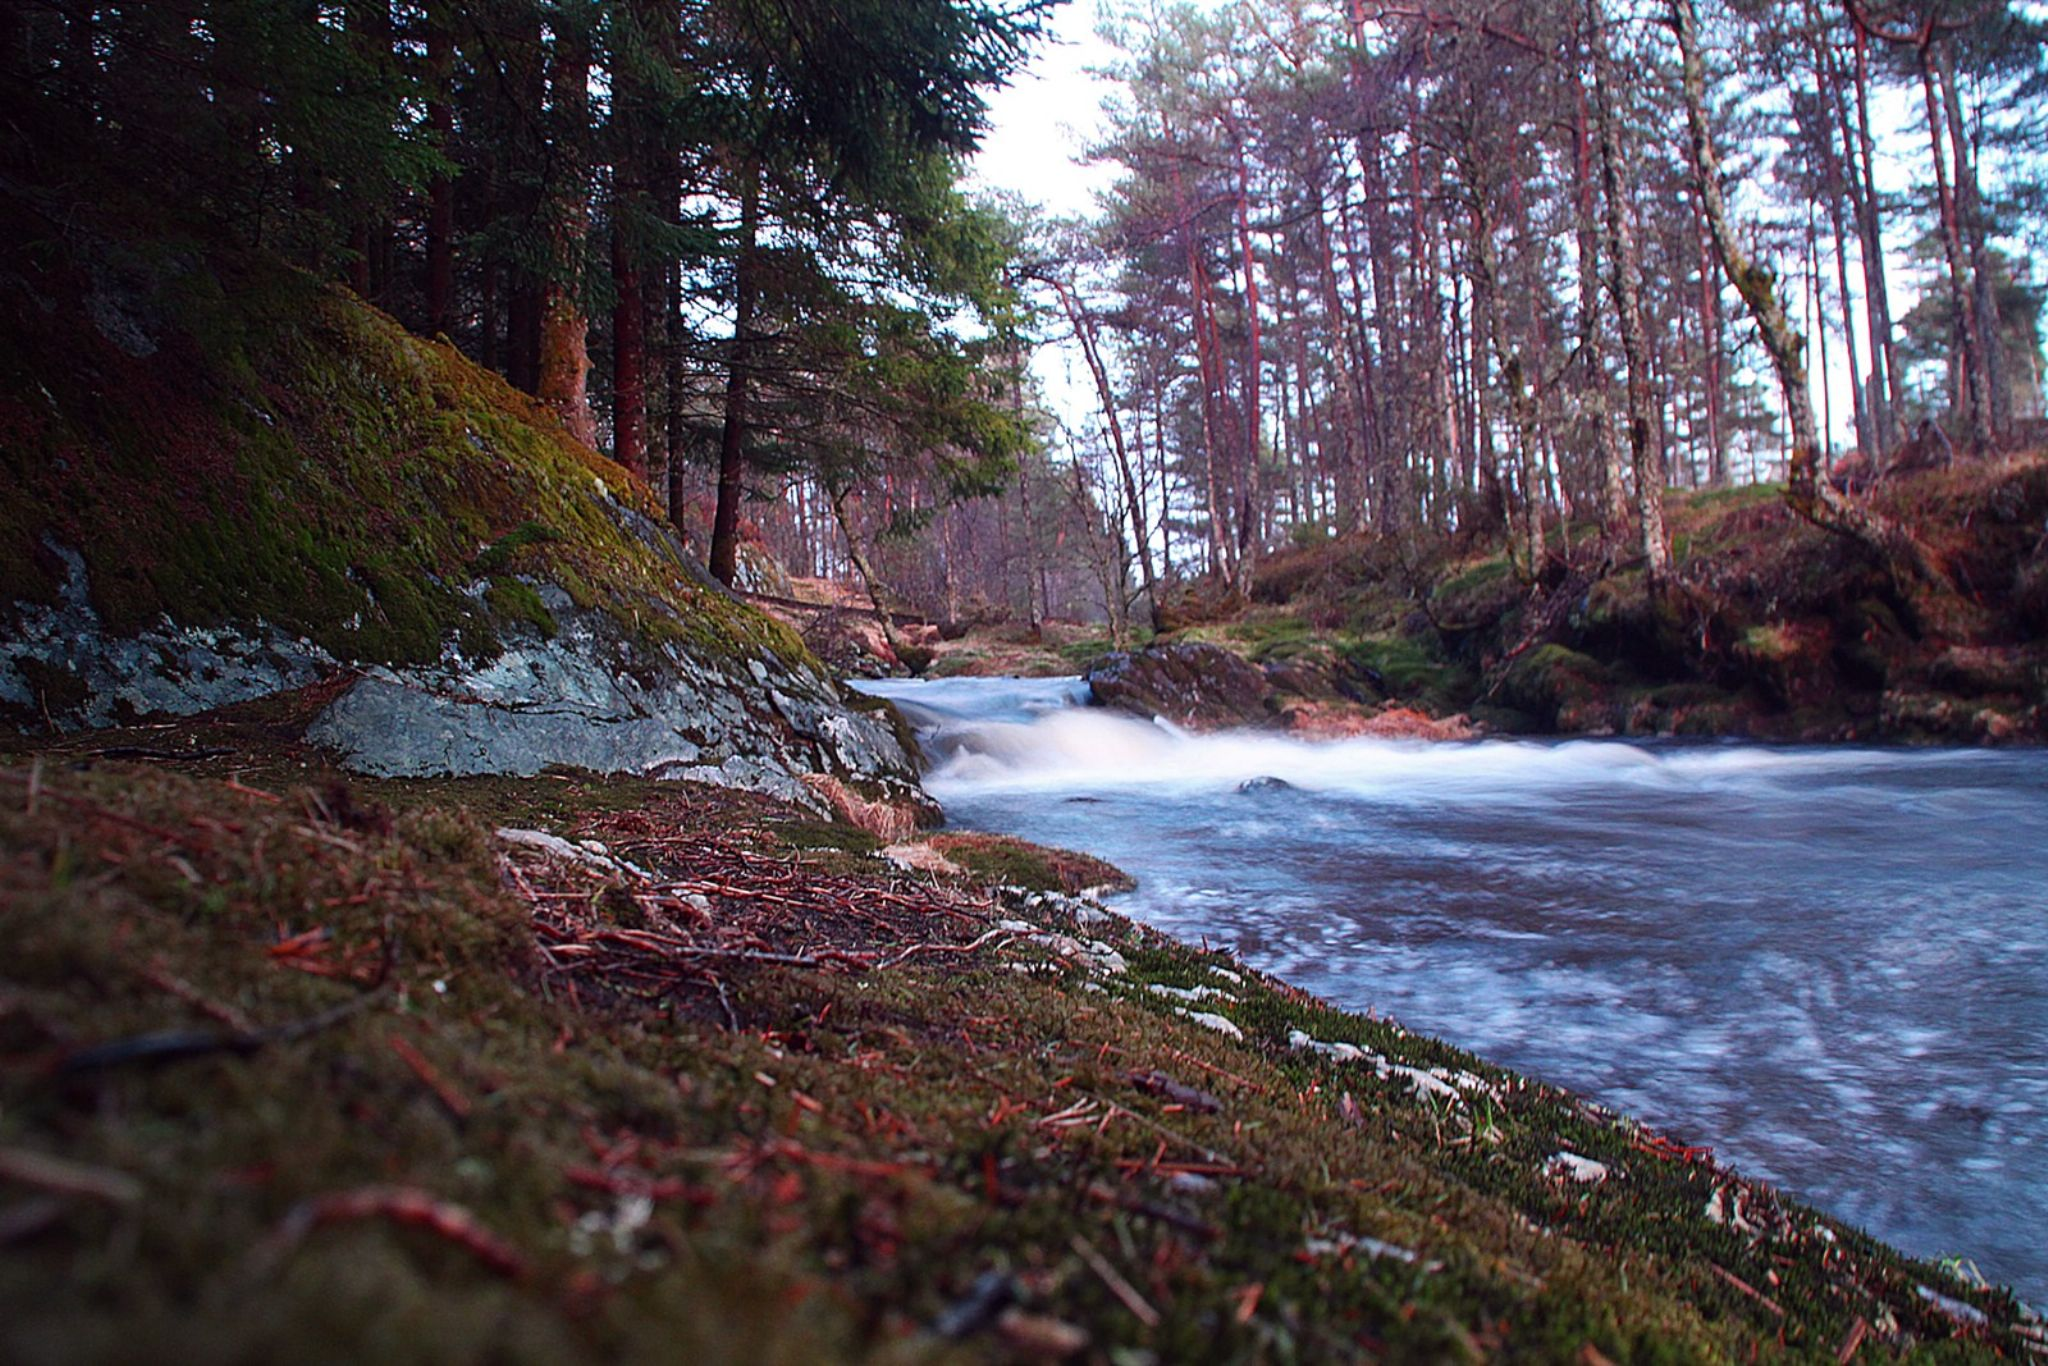 Flowing with the Stream by vidar.totland